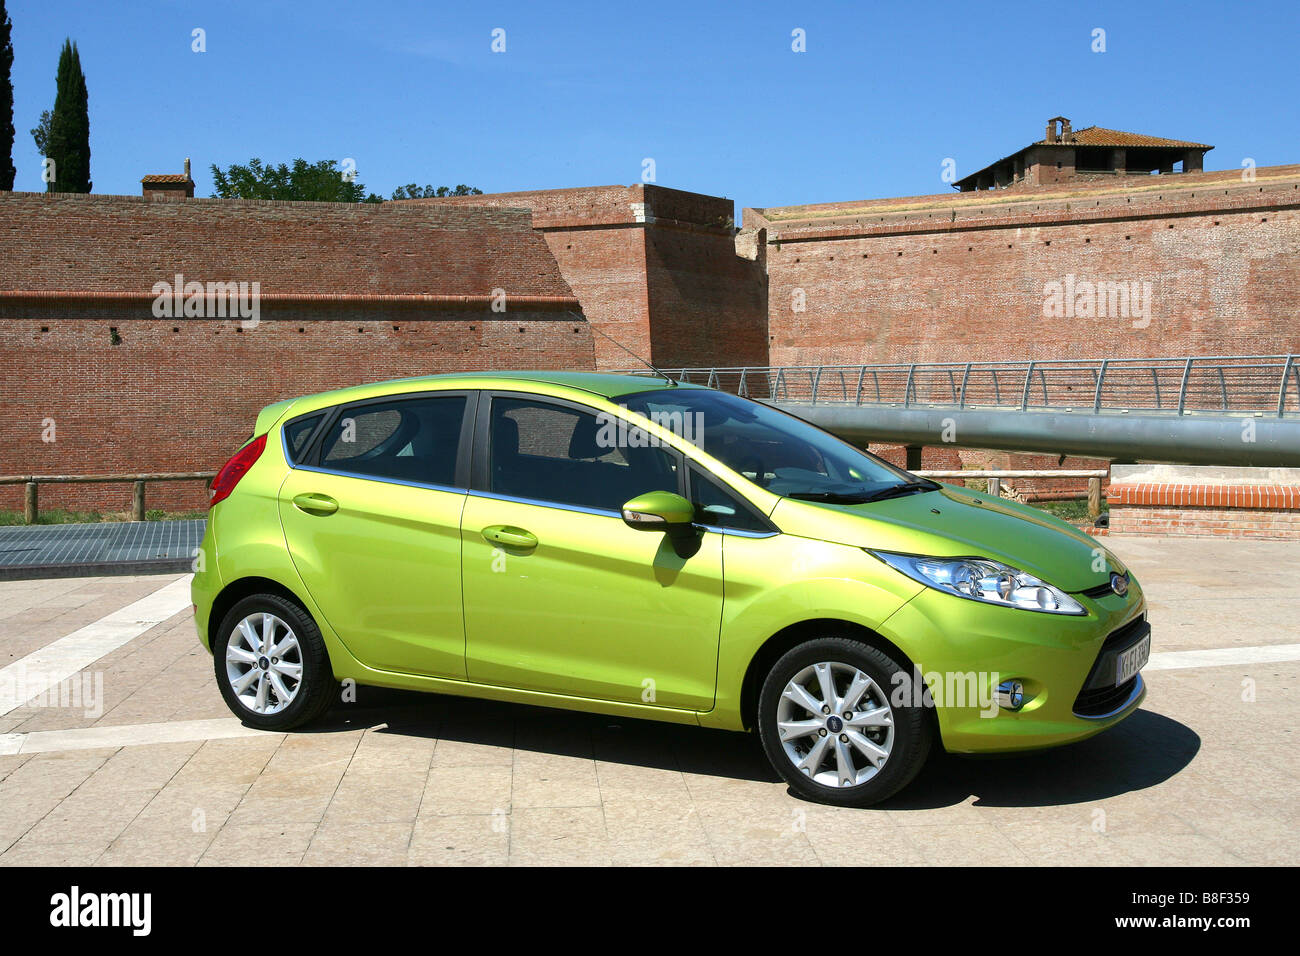 new green ford fiesta car stock photos new green ford fiesta car rh alamy com green ford fiesta for sale green ford fiesta hatchback